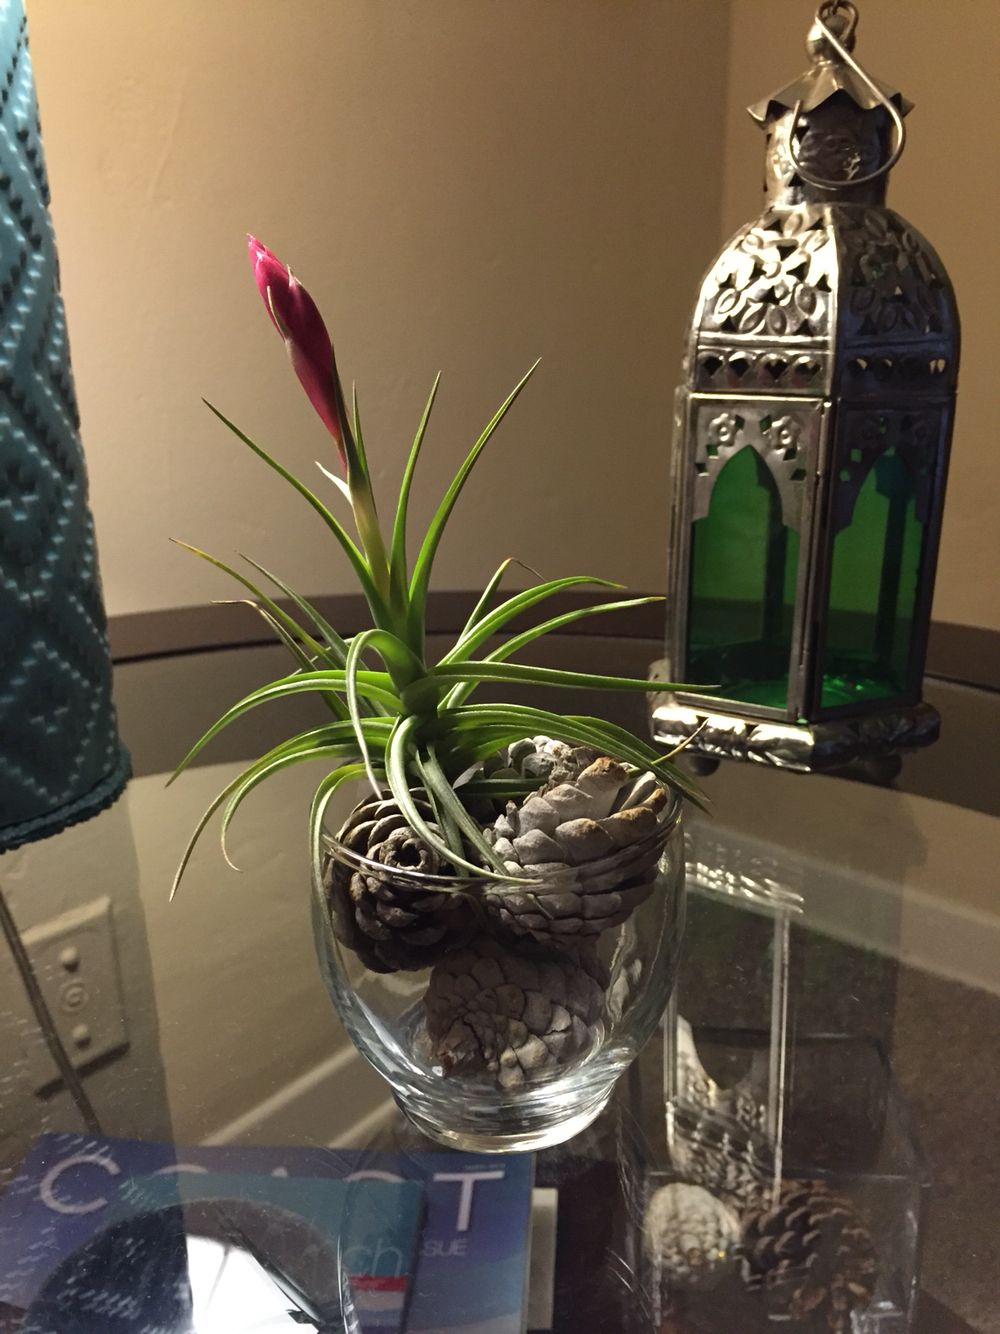 My 1st flowerbud on my airplant. Had waited awhile for it to have its 1st flower bud soon to blossom.